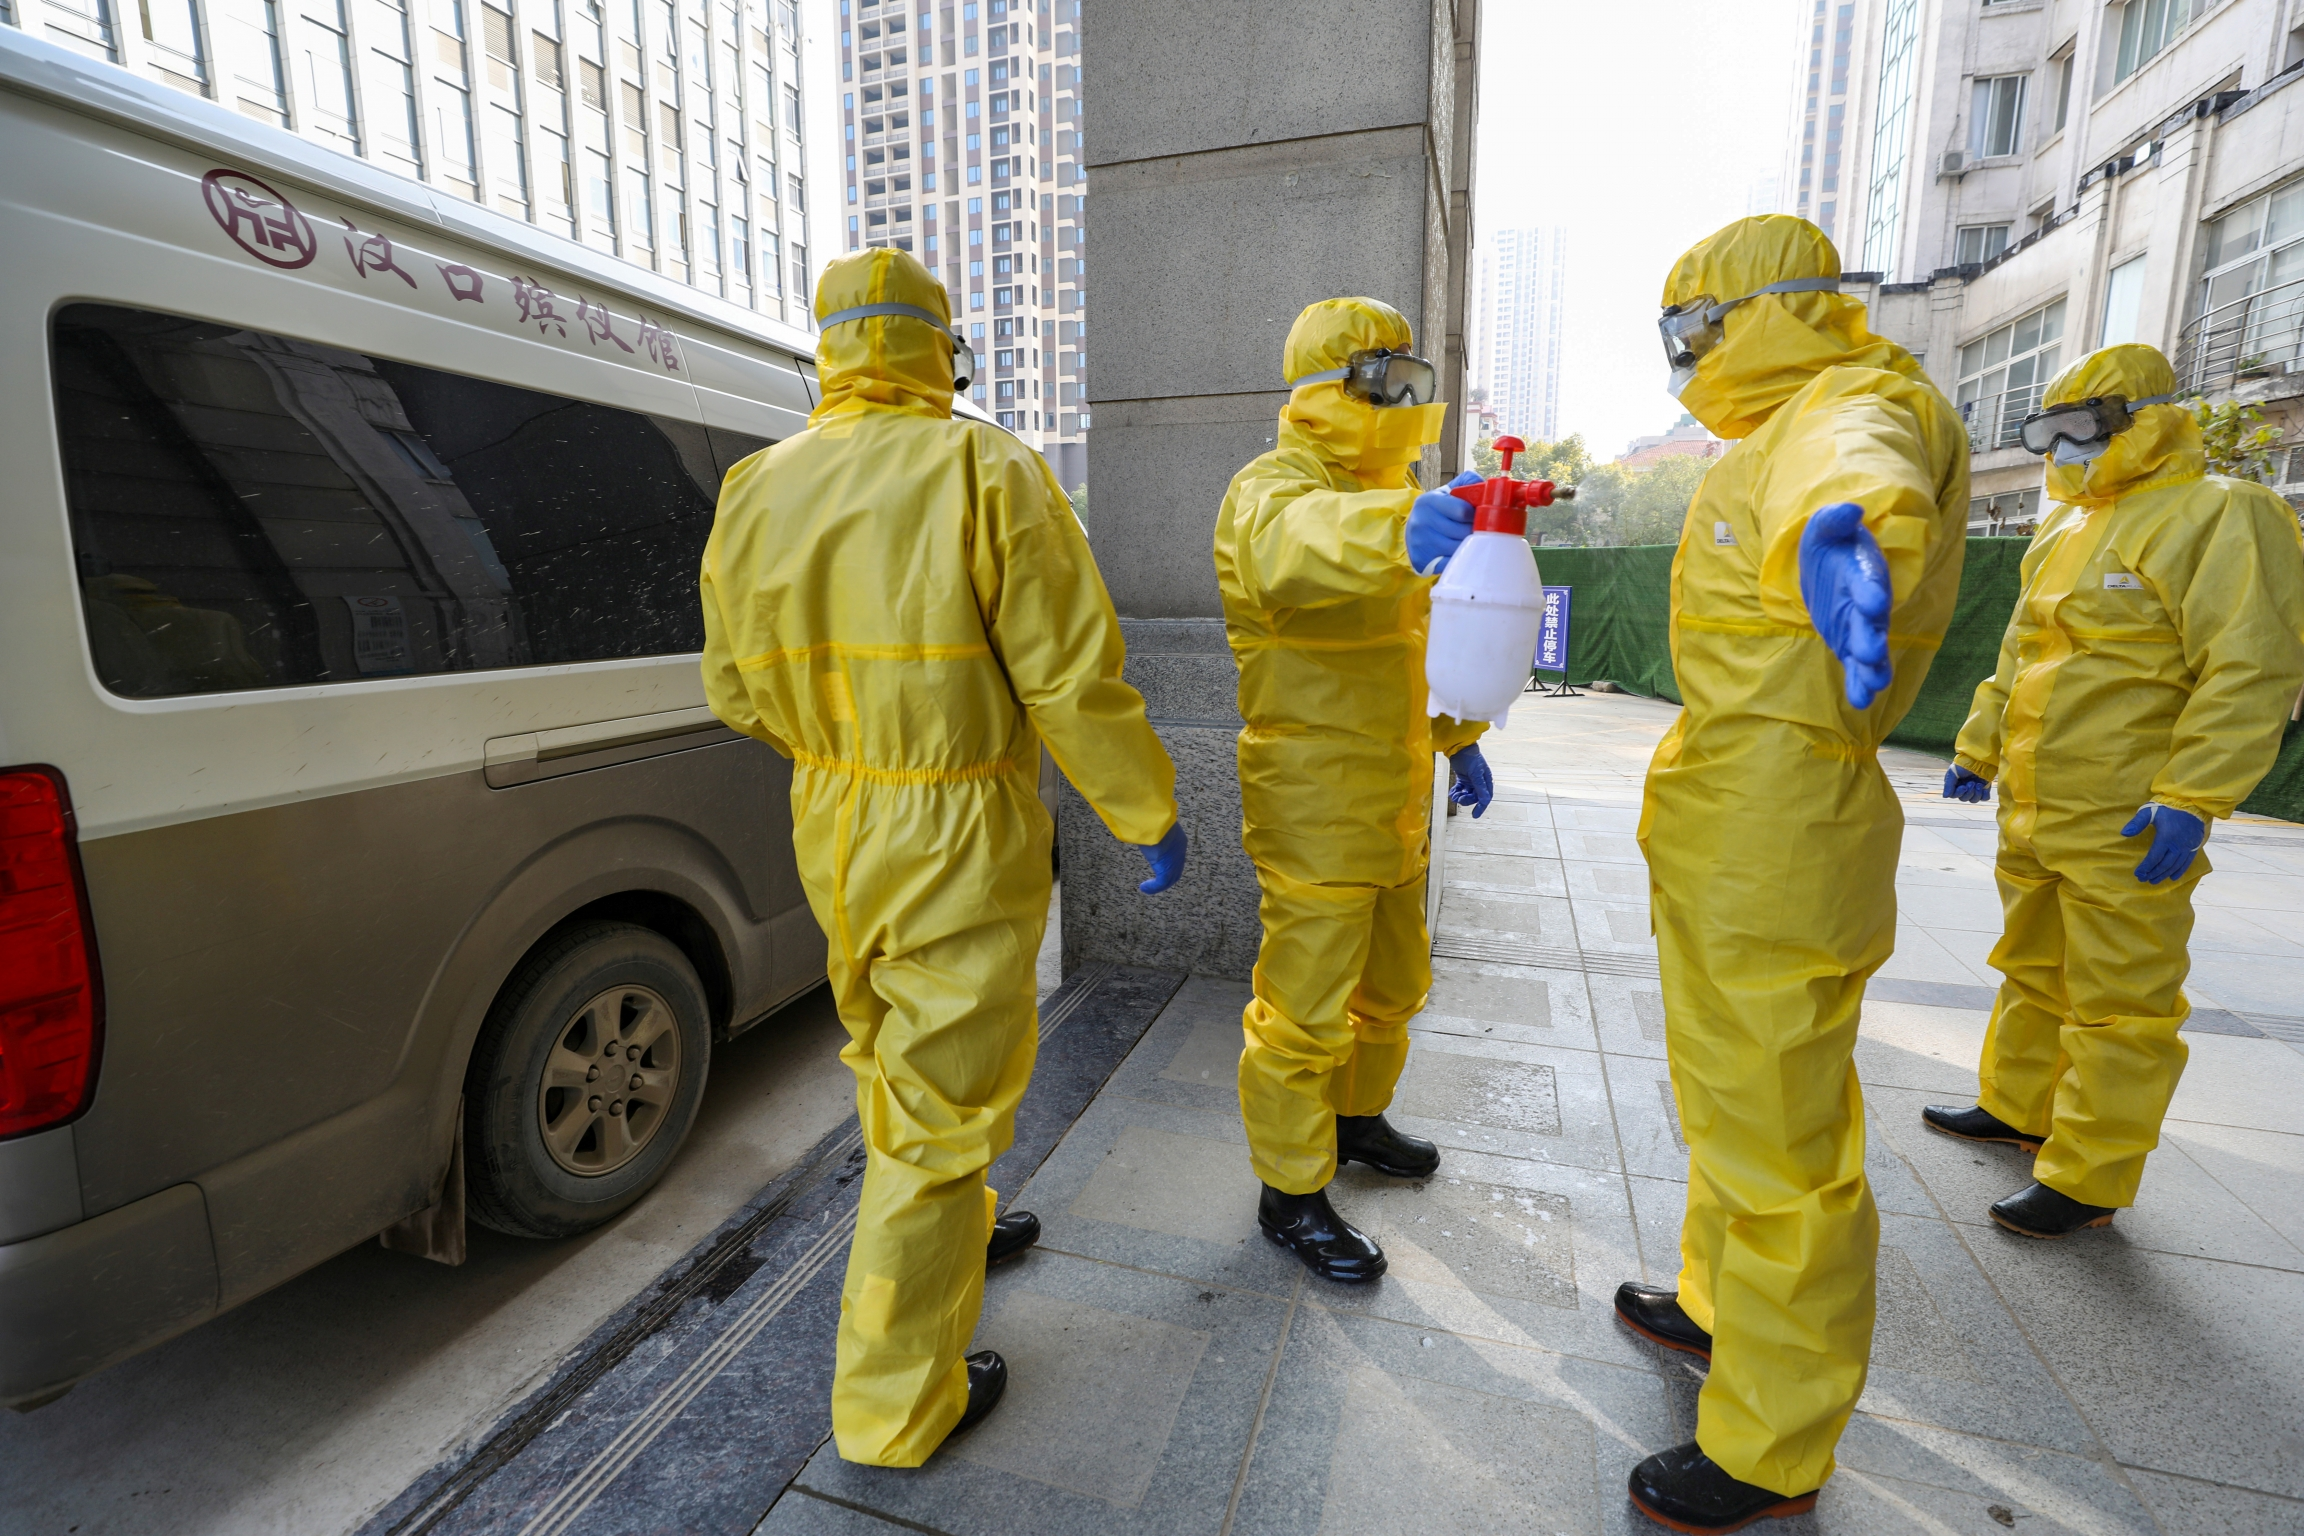 Funeral parlor staff members in protective suits help a colleague with disinfection after they transferred a body at a hospital, following the outbreak of a new coronavirus in Wuhan, Hubei province, China, Jan. 30, 2020.